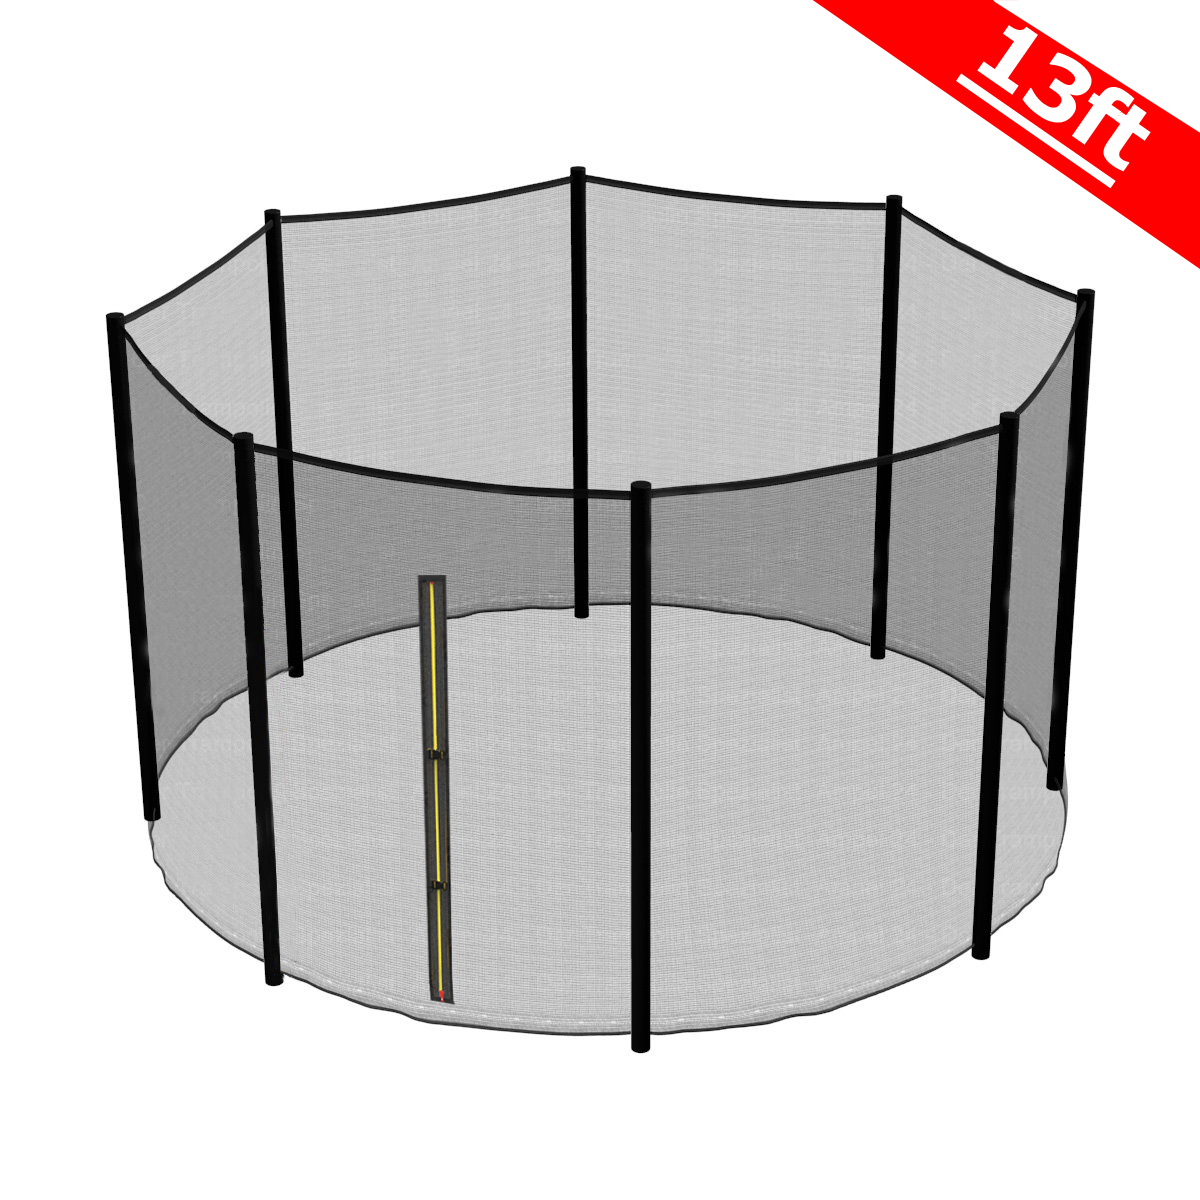 13FT TRAMPOLINE Replacement Safety Net Enclosure Surround